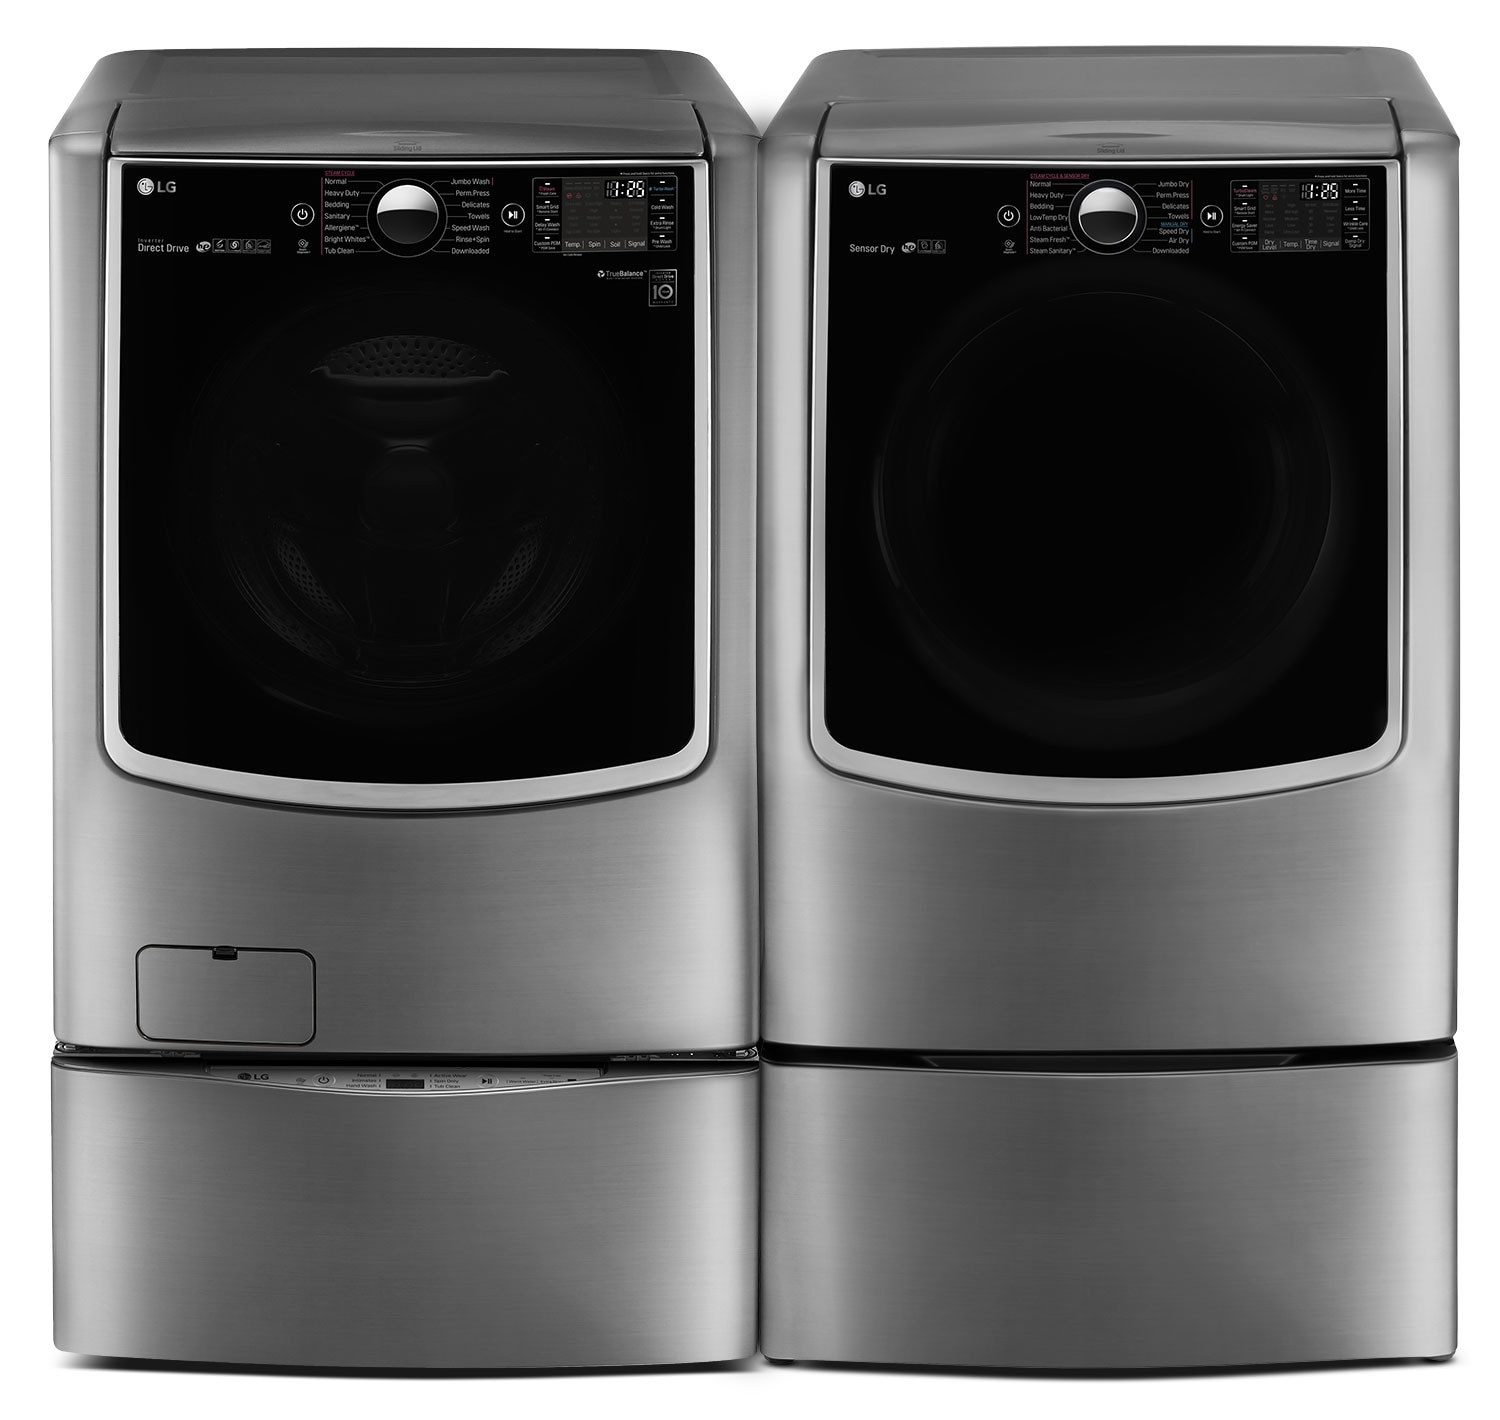 Washers and Dryers - LG TWIN Wash™ 6.0 Cu. Ft. Washer, Pedestal Washer and 9.0 Cu. Ft. Gas Dryer - Graphite Steel